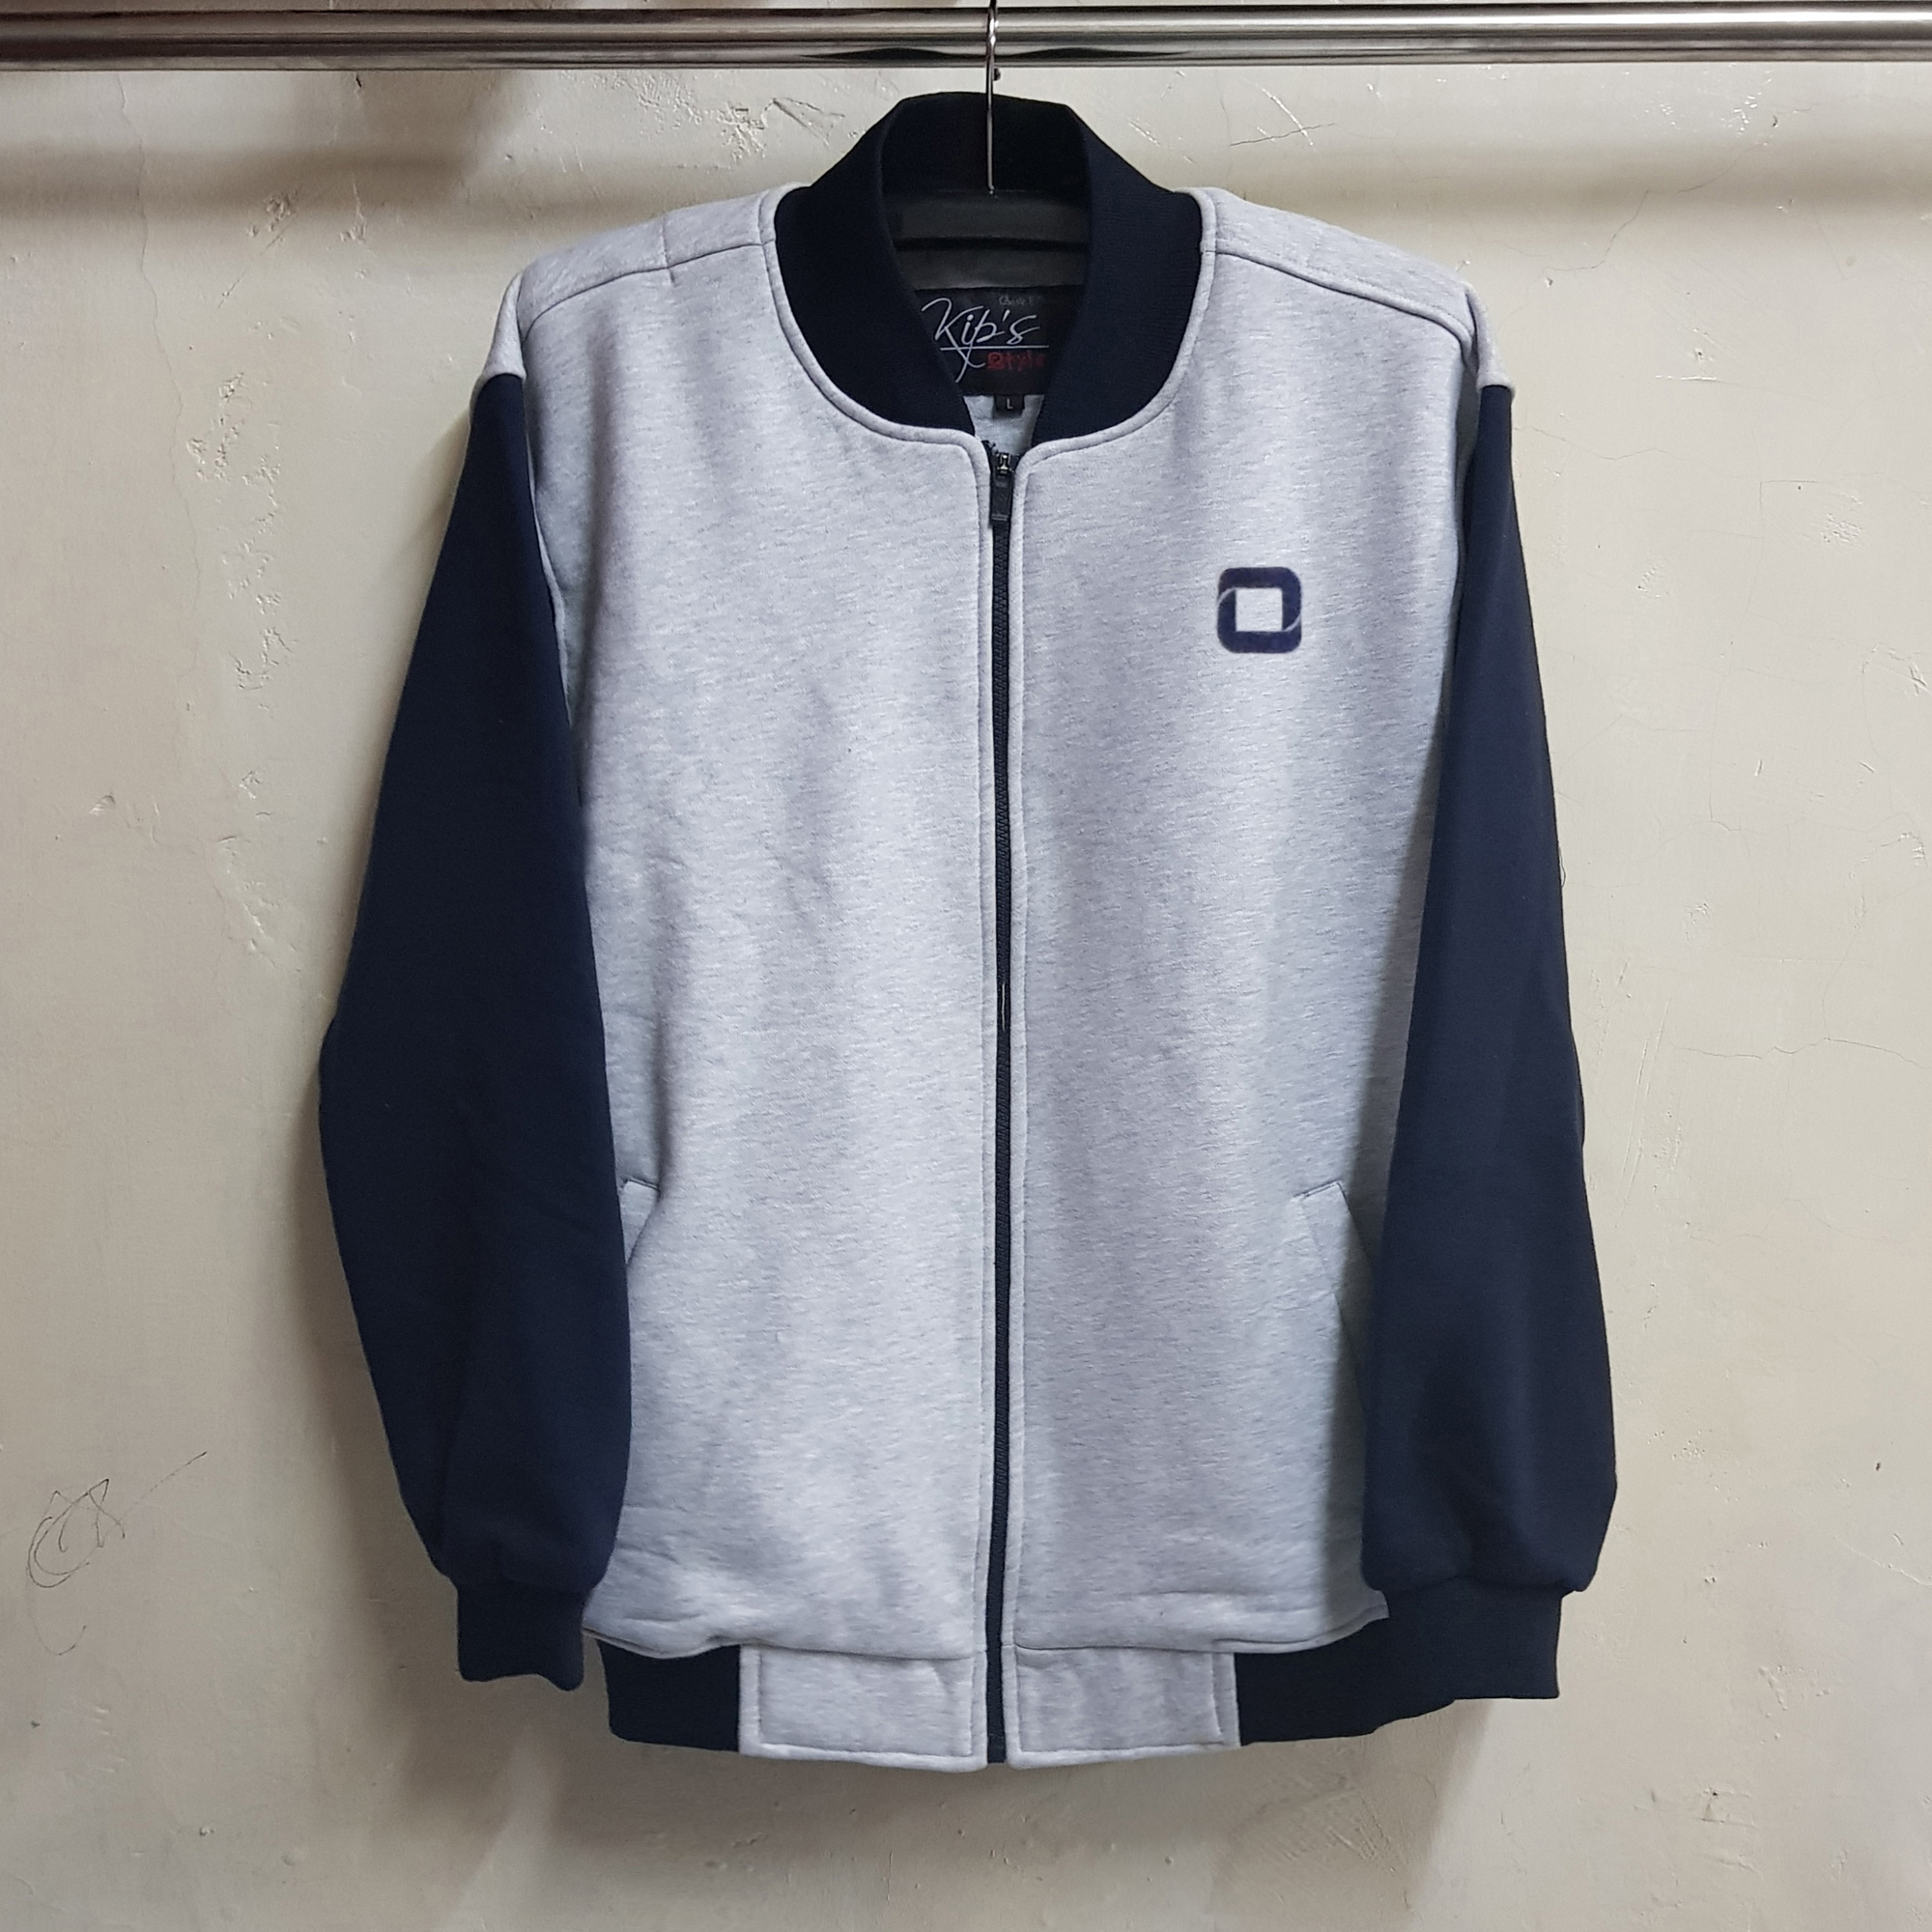 Jaket Varsity Fleece Cotton, Seragam Jaket